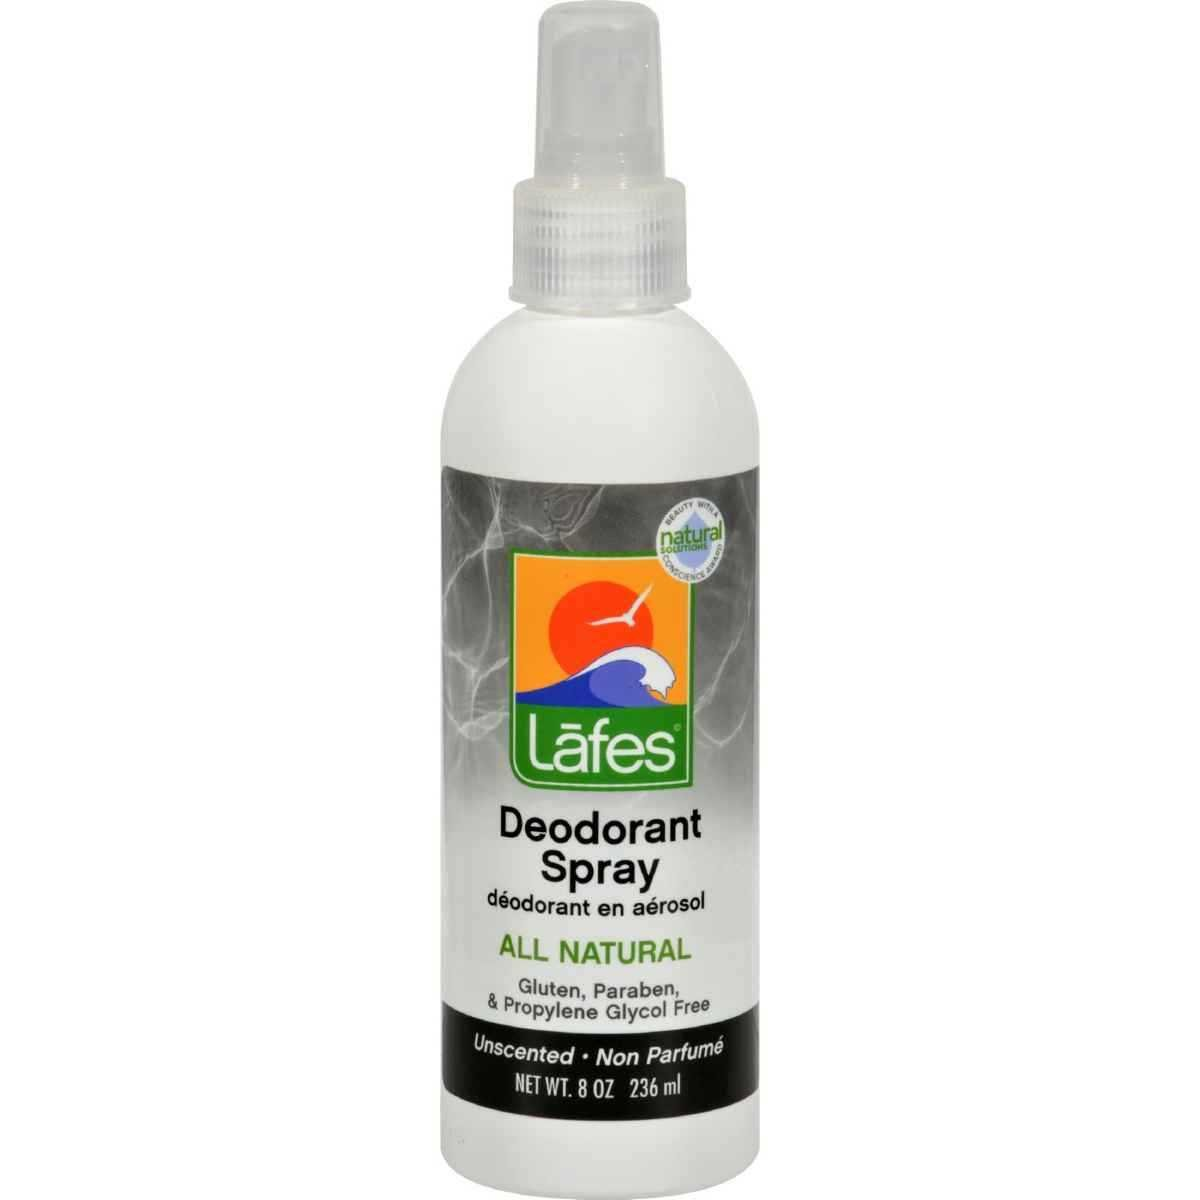 Deodorant Spray with Aloe by Lafes Natural Body Care - 8 oz Lafe' s Natural Bodycare NCS/8